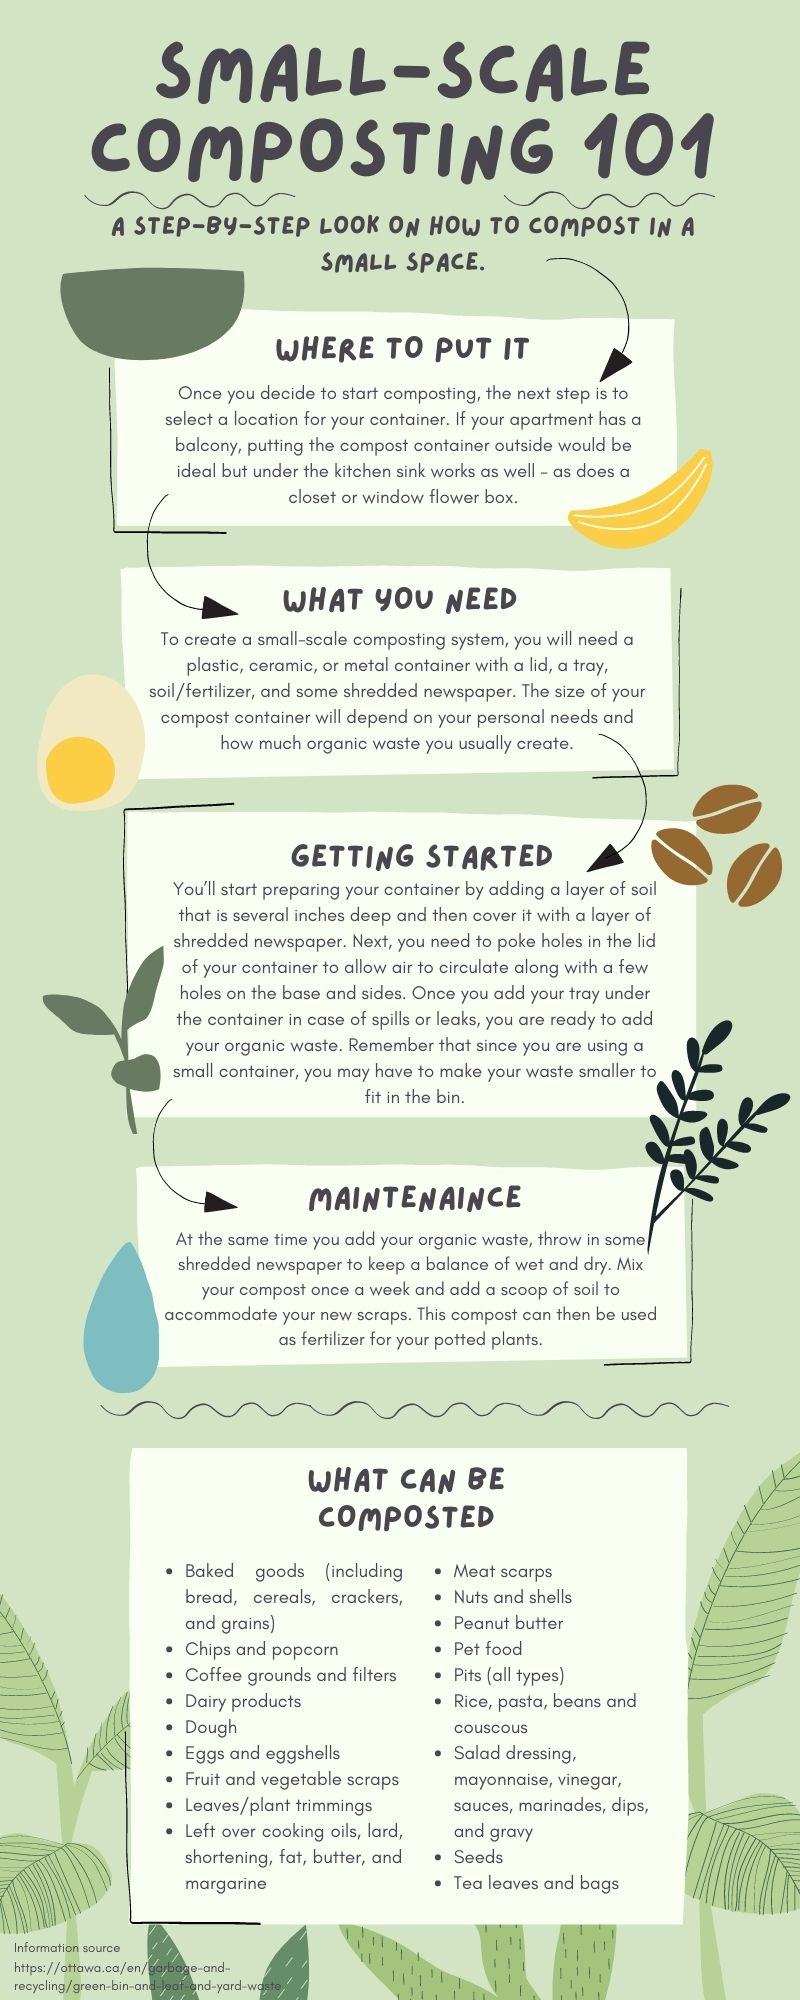 step by step guide to compost on a small-scale